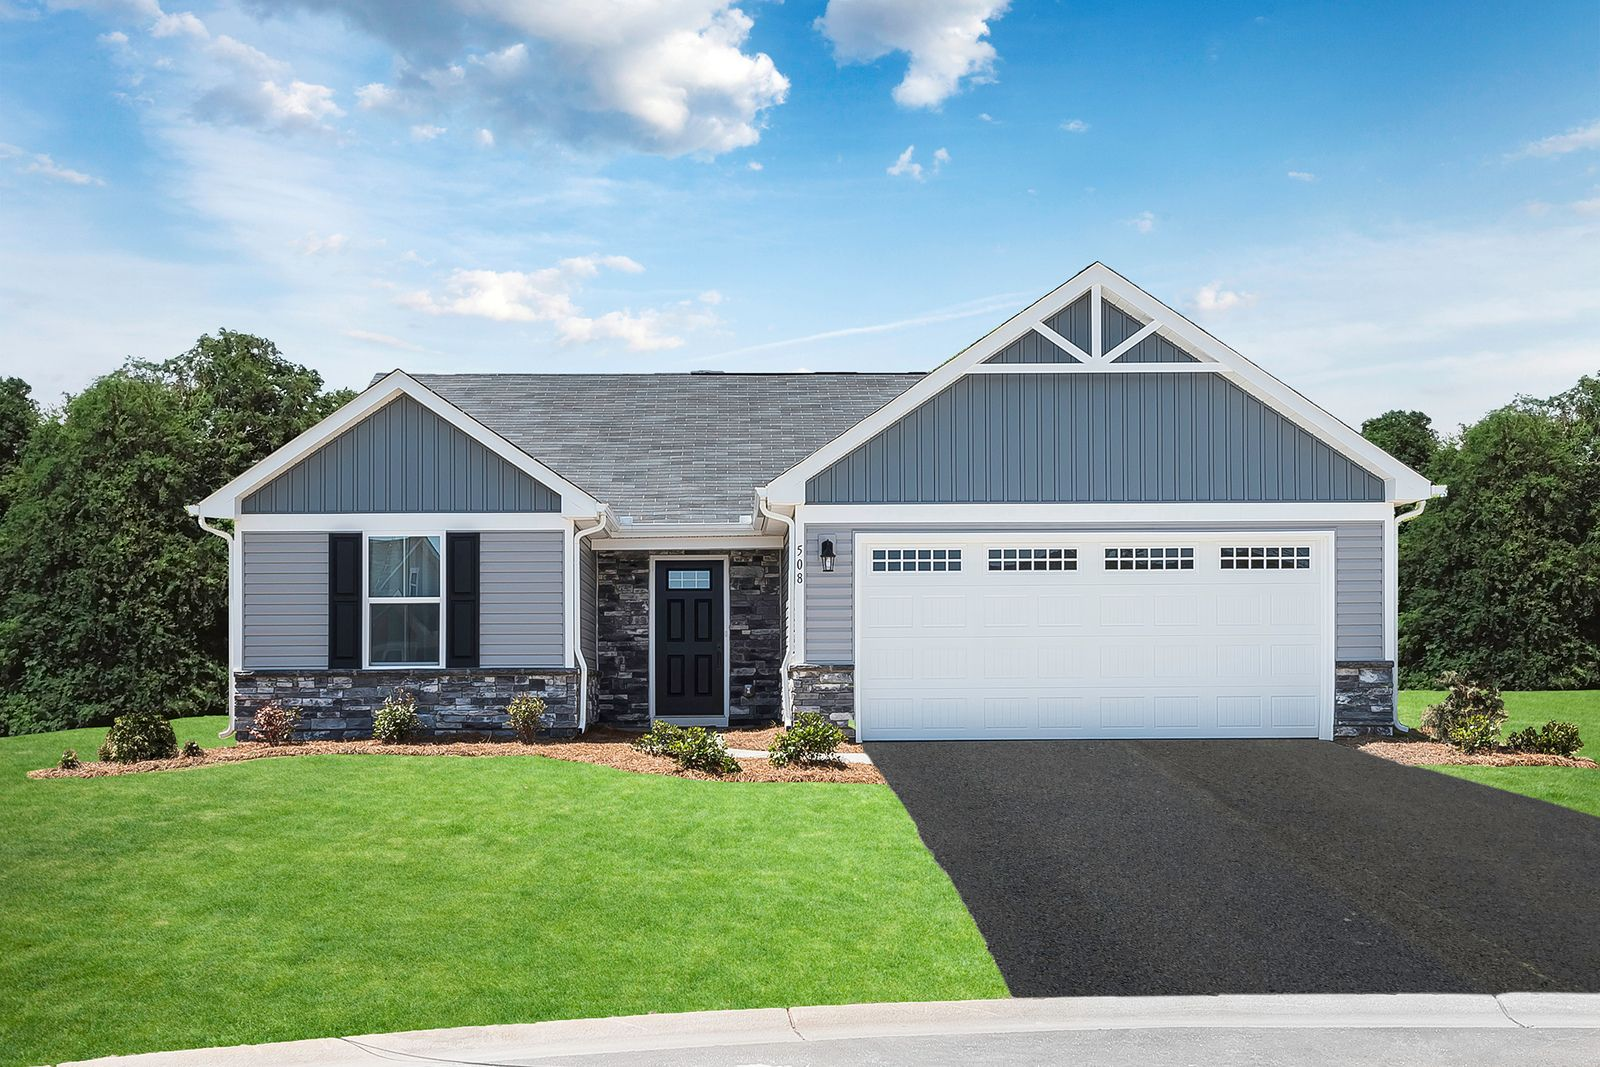 Welcome to Milford Ponds!:Take a look at Sussex County's fastest growing community to see why over100 families have already made the choice to call Milford Pondshome.